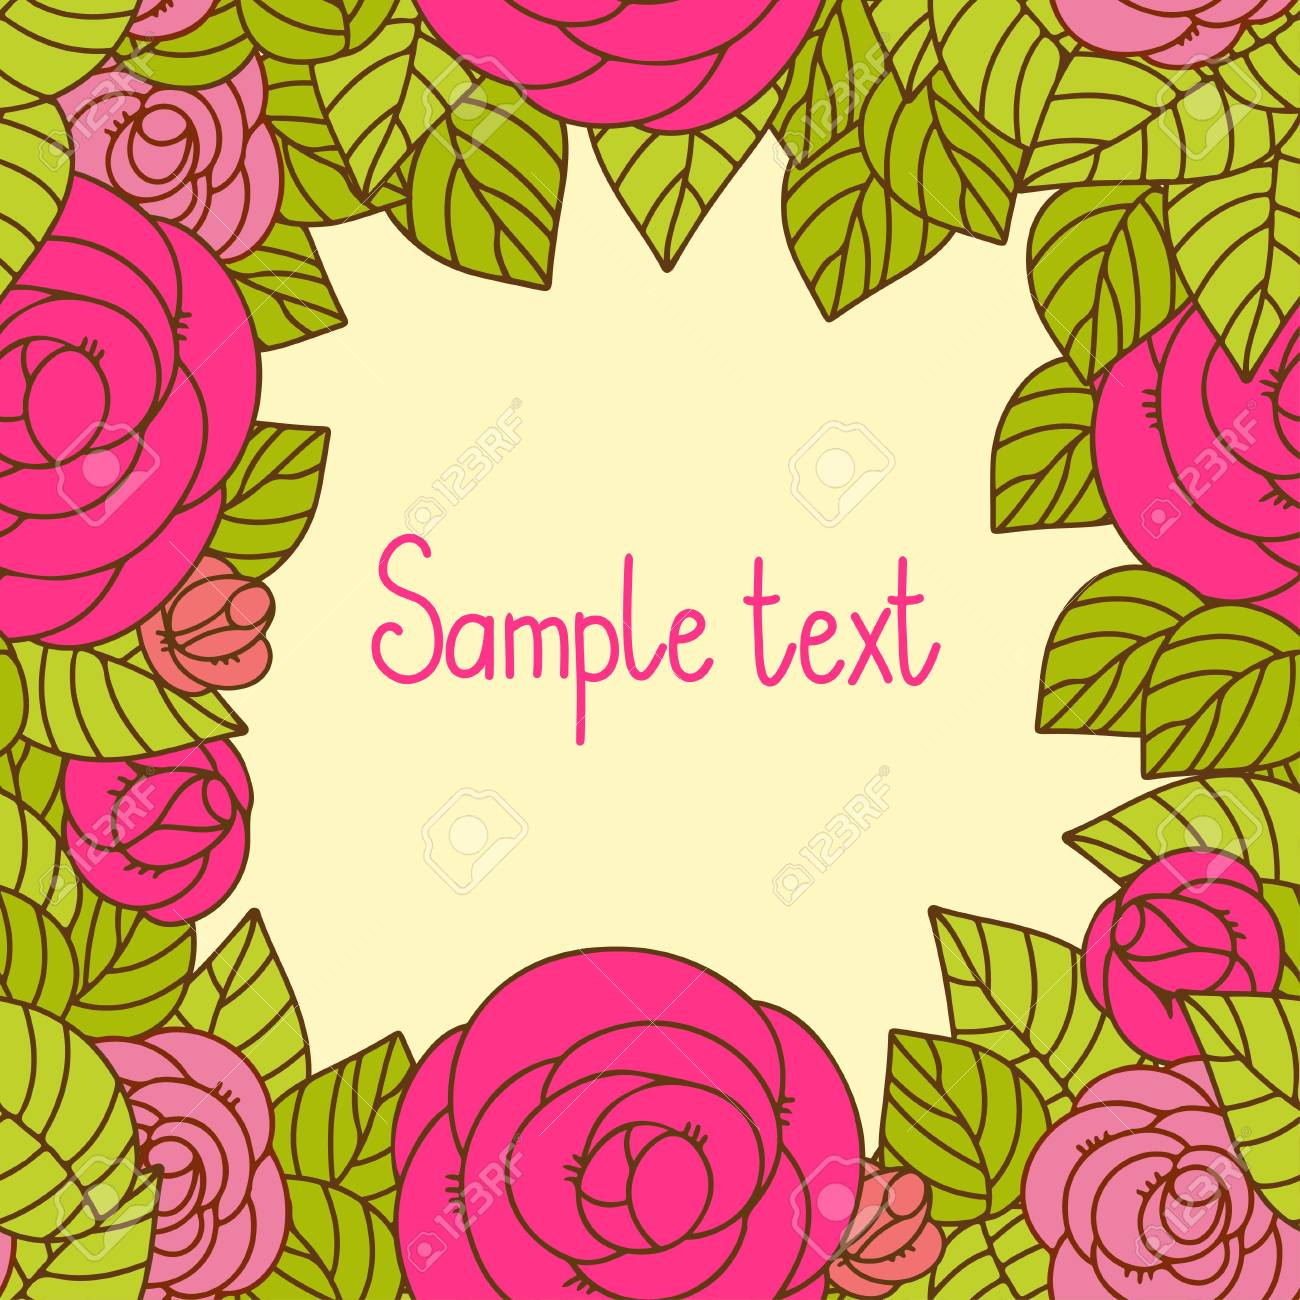 Vintage floral background with space for text Stock Vector - 20705346